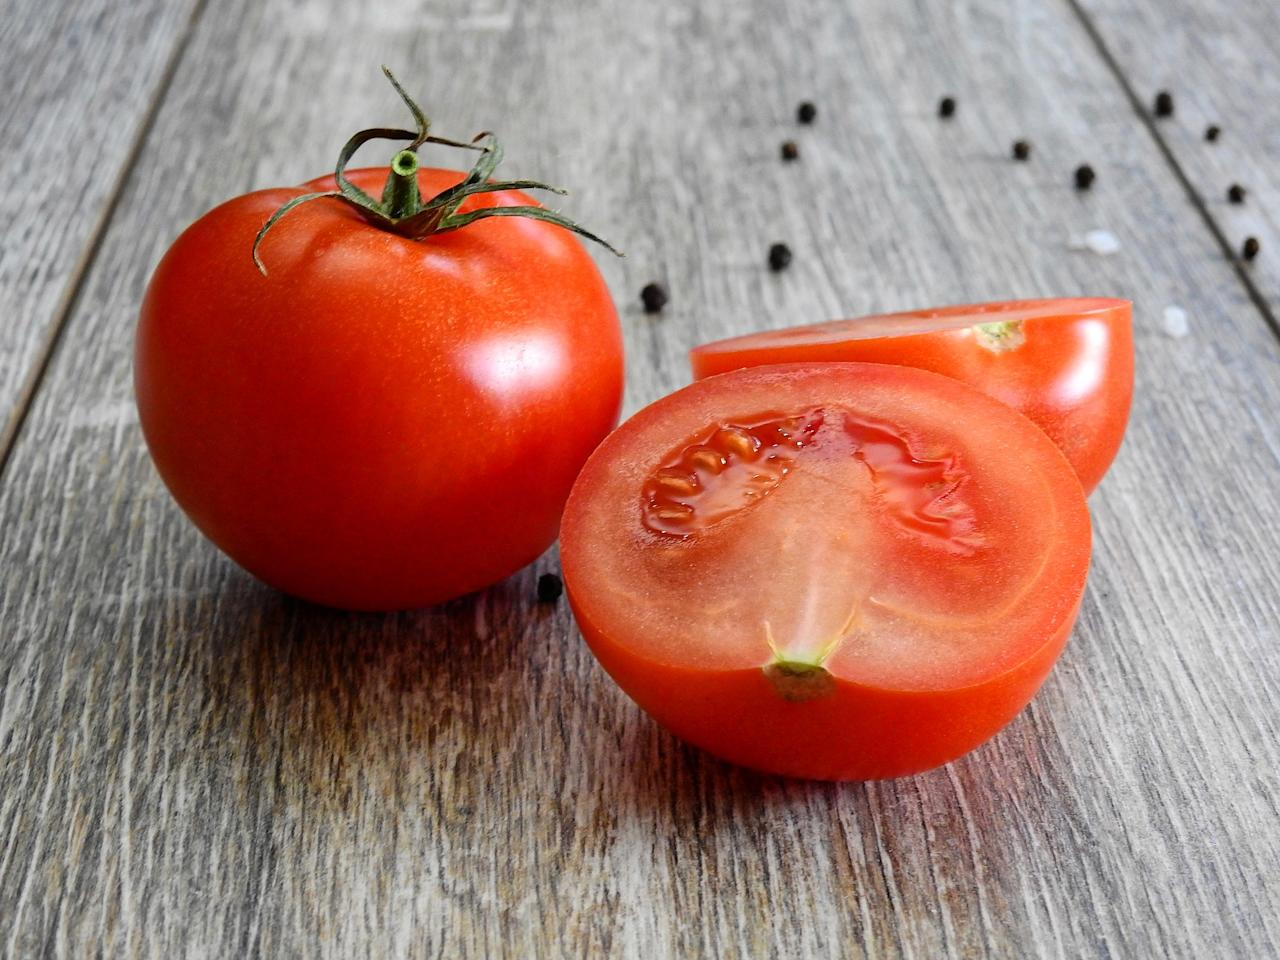 <p>Tomatoes are super healthy and are chochful of vitamins, antioxidants and minerals. They are also natural astringents, helping remove excess oil and minimising pores. This tomato and gram flour pack is good for those dealing with oily skin and acne.<br /> Take a small ripe tomato and blitz it in the blender; sieve out all the chunks. Take two tablespoons of gram flour (besan) and add the tomato juice slowly to maintain a thick consistency. Apply the mixture onto your face and neck area. Leave it on for about 10-15 minutes and then wash off with warm water. </p>